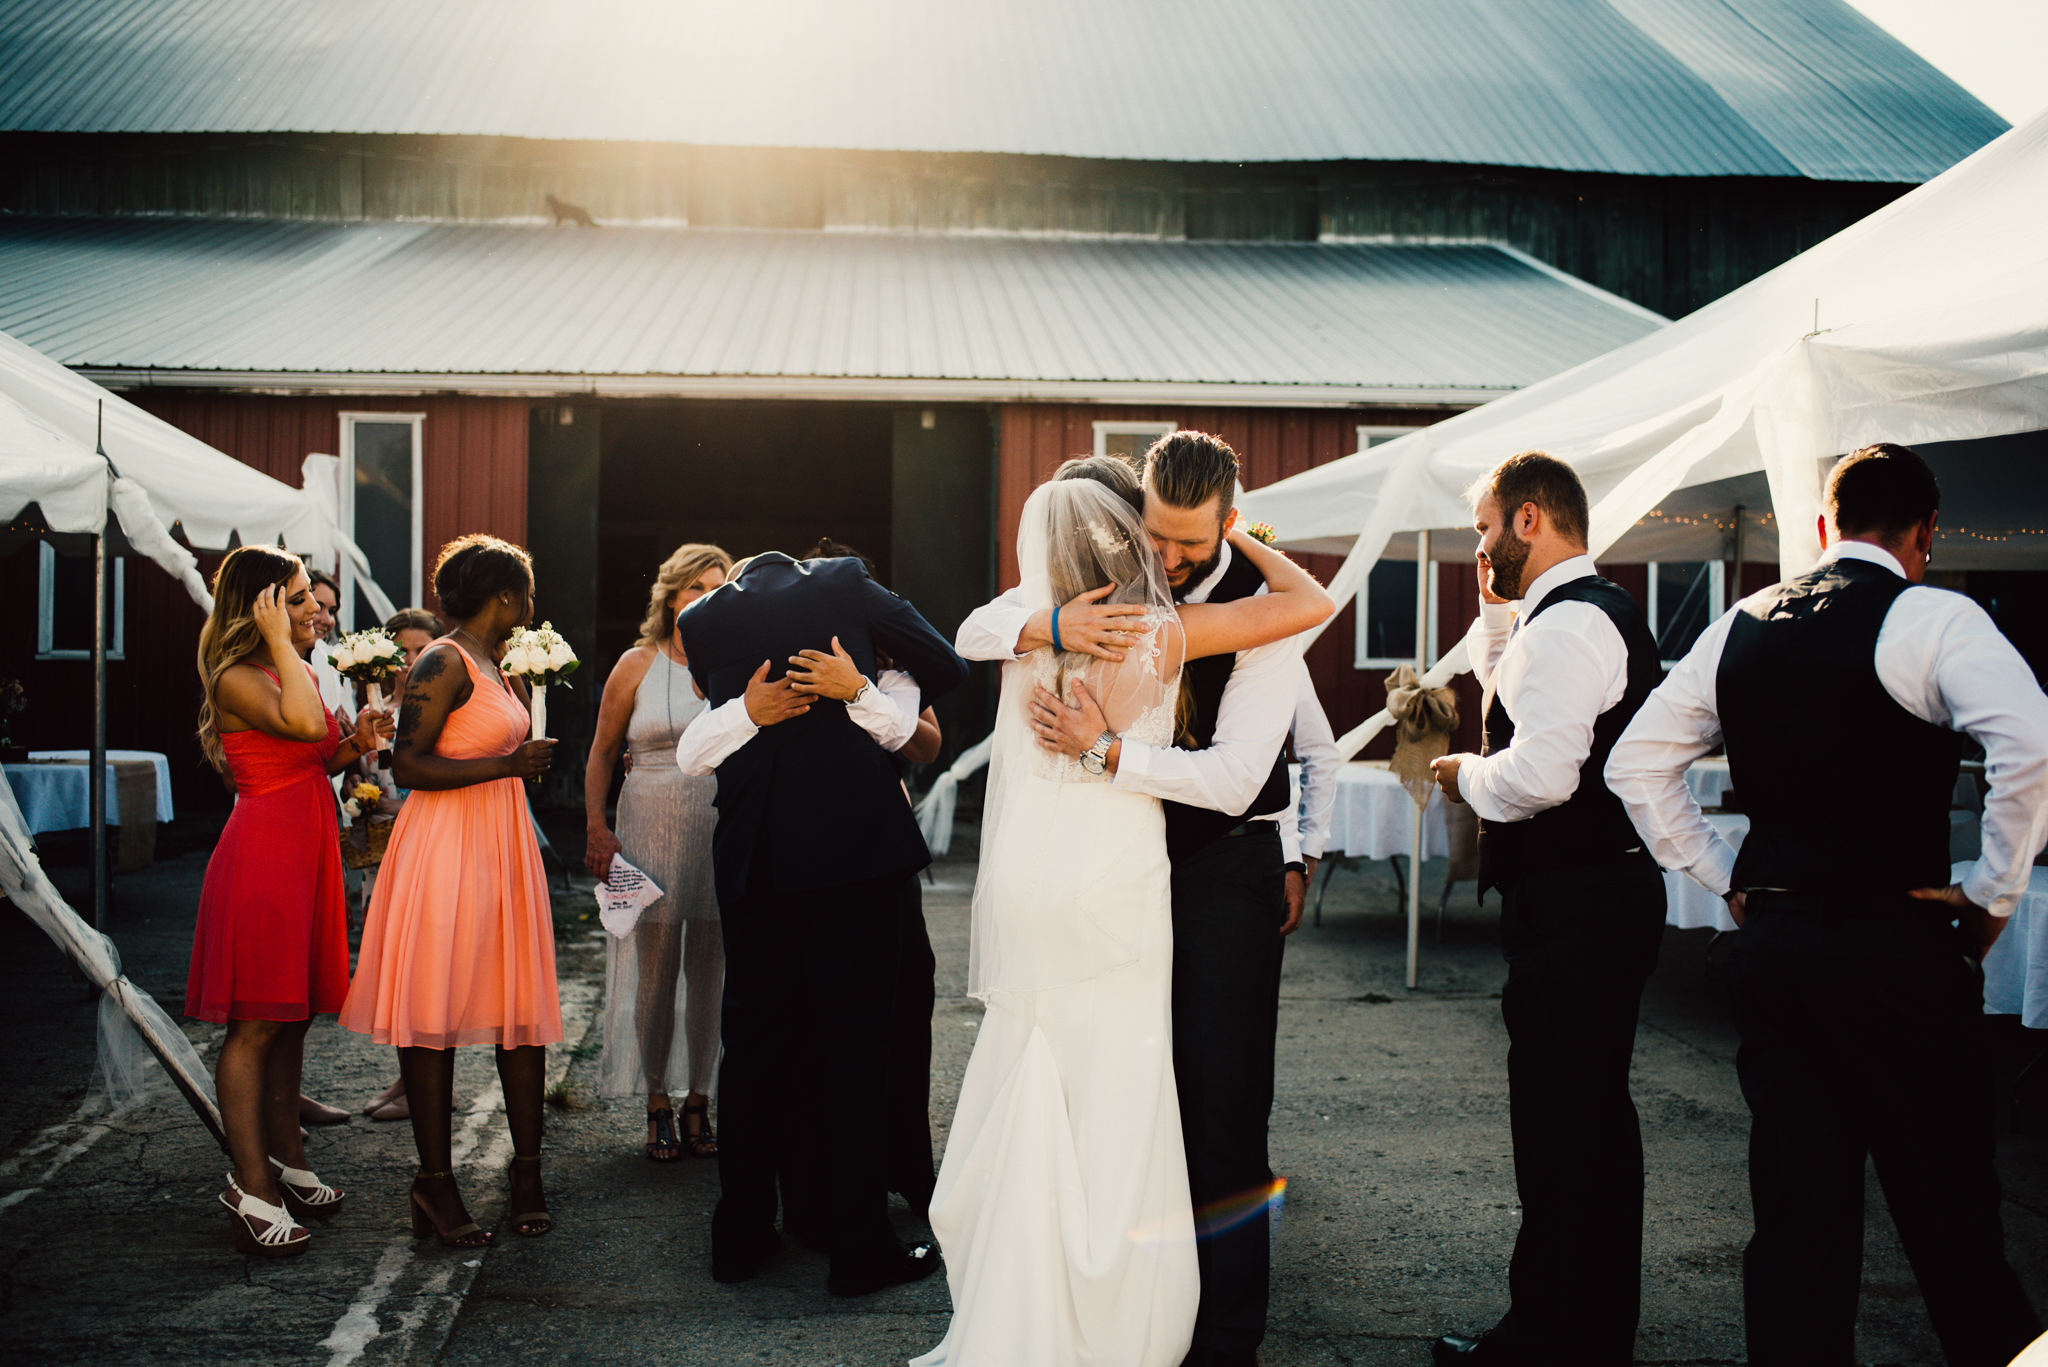 Martinsville West Virginia Horse Barn Rustic Wedding White Sails Creative Photography_41.JPG